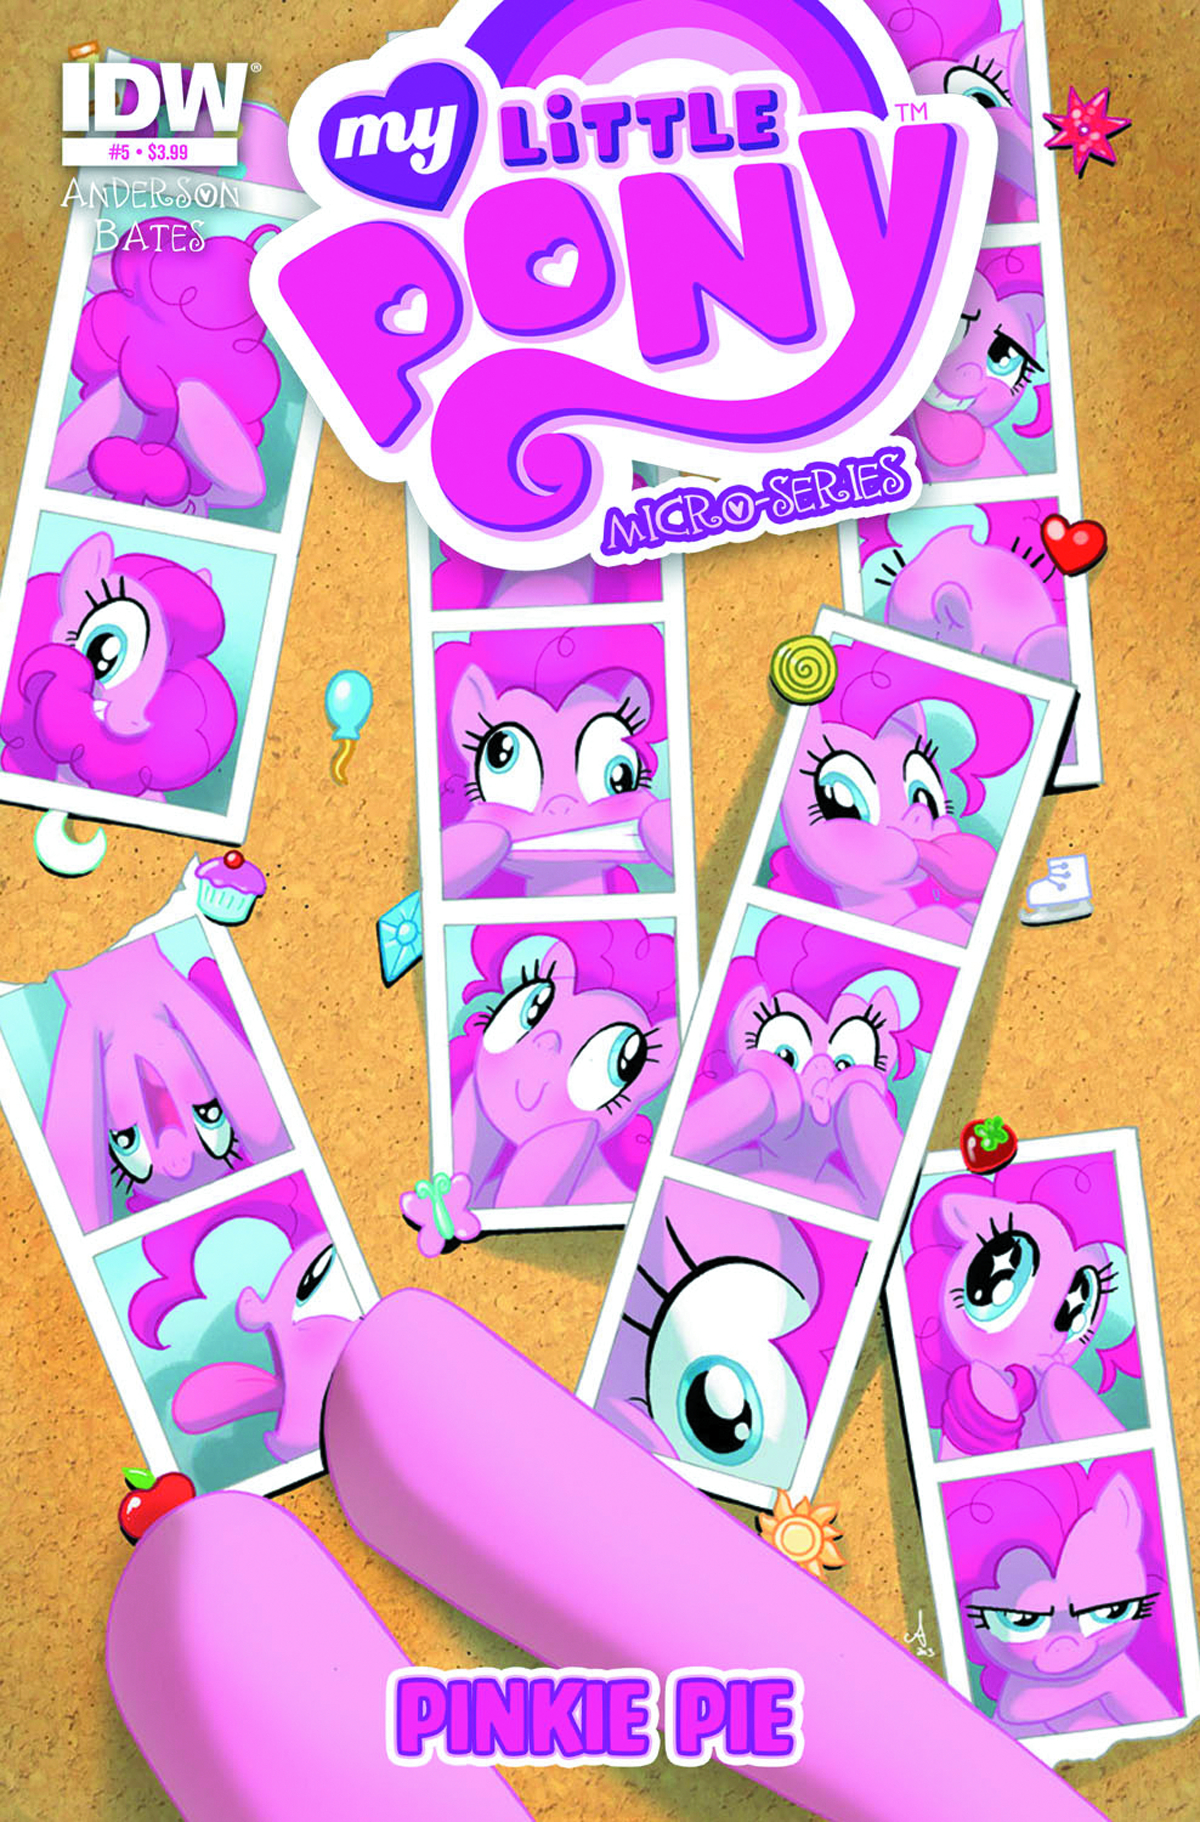 MY LITTLE PONY MICRO SERIES #5